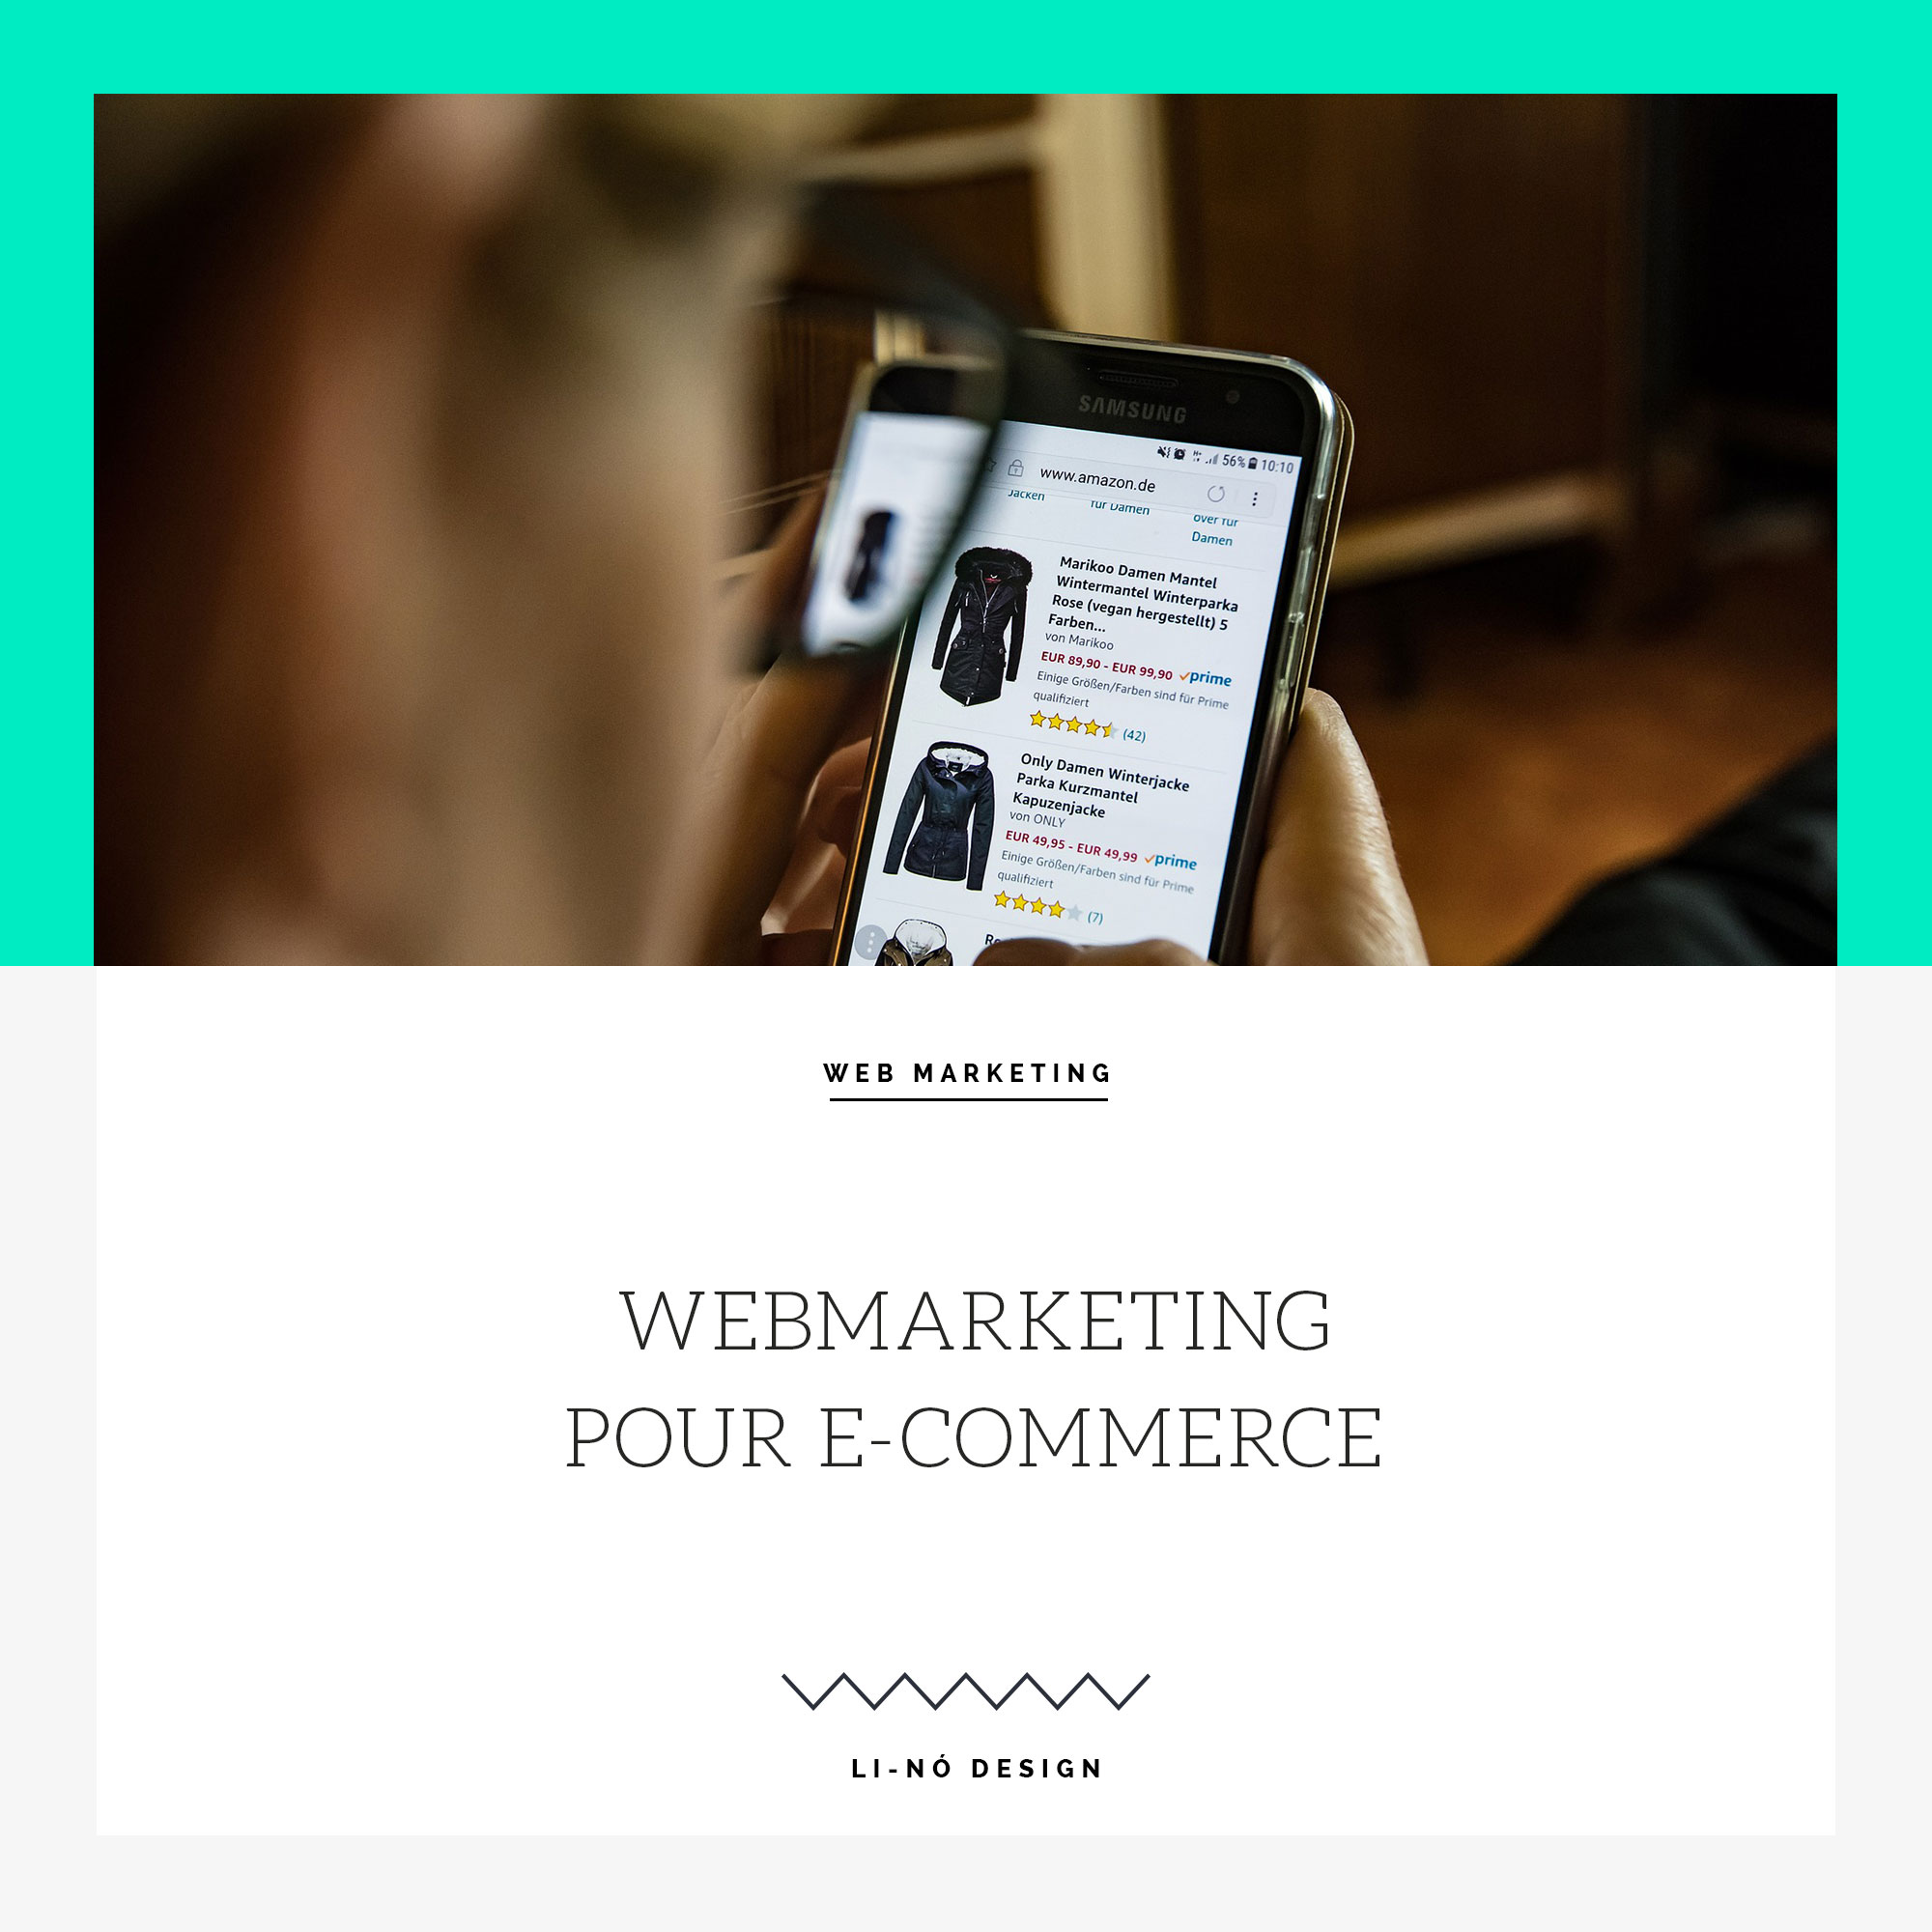 Webmarketing pour E-commerce